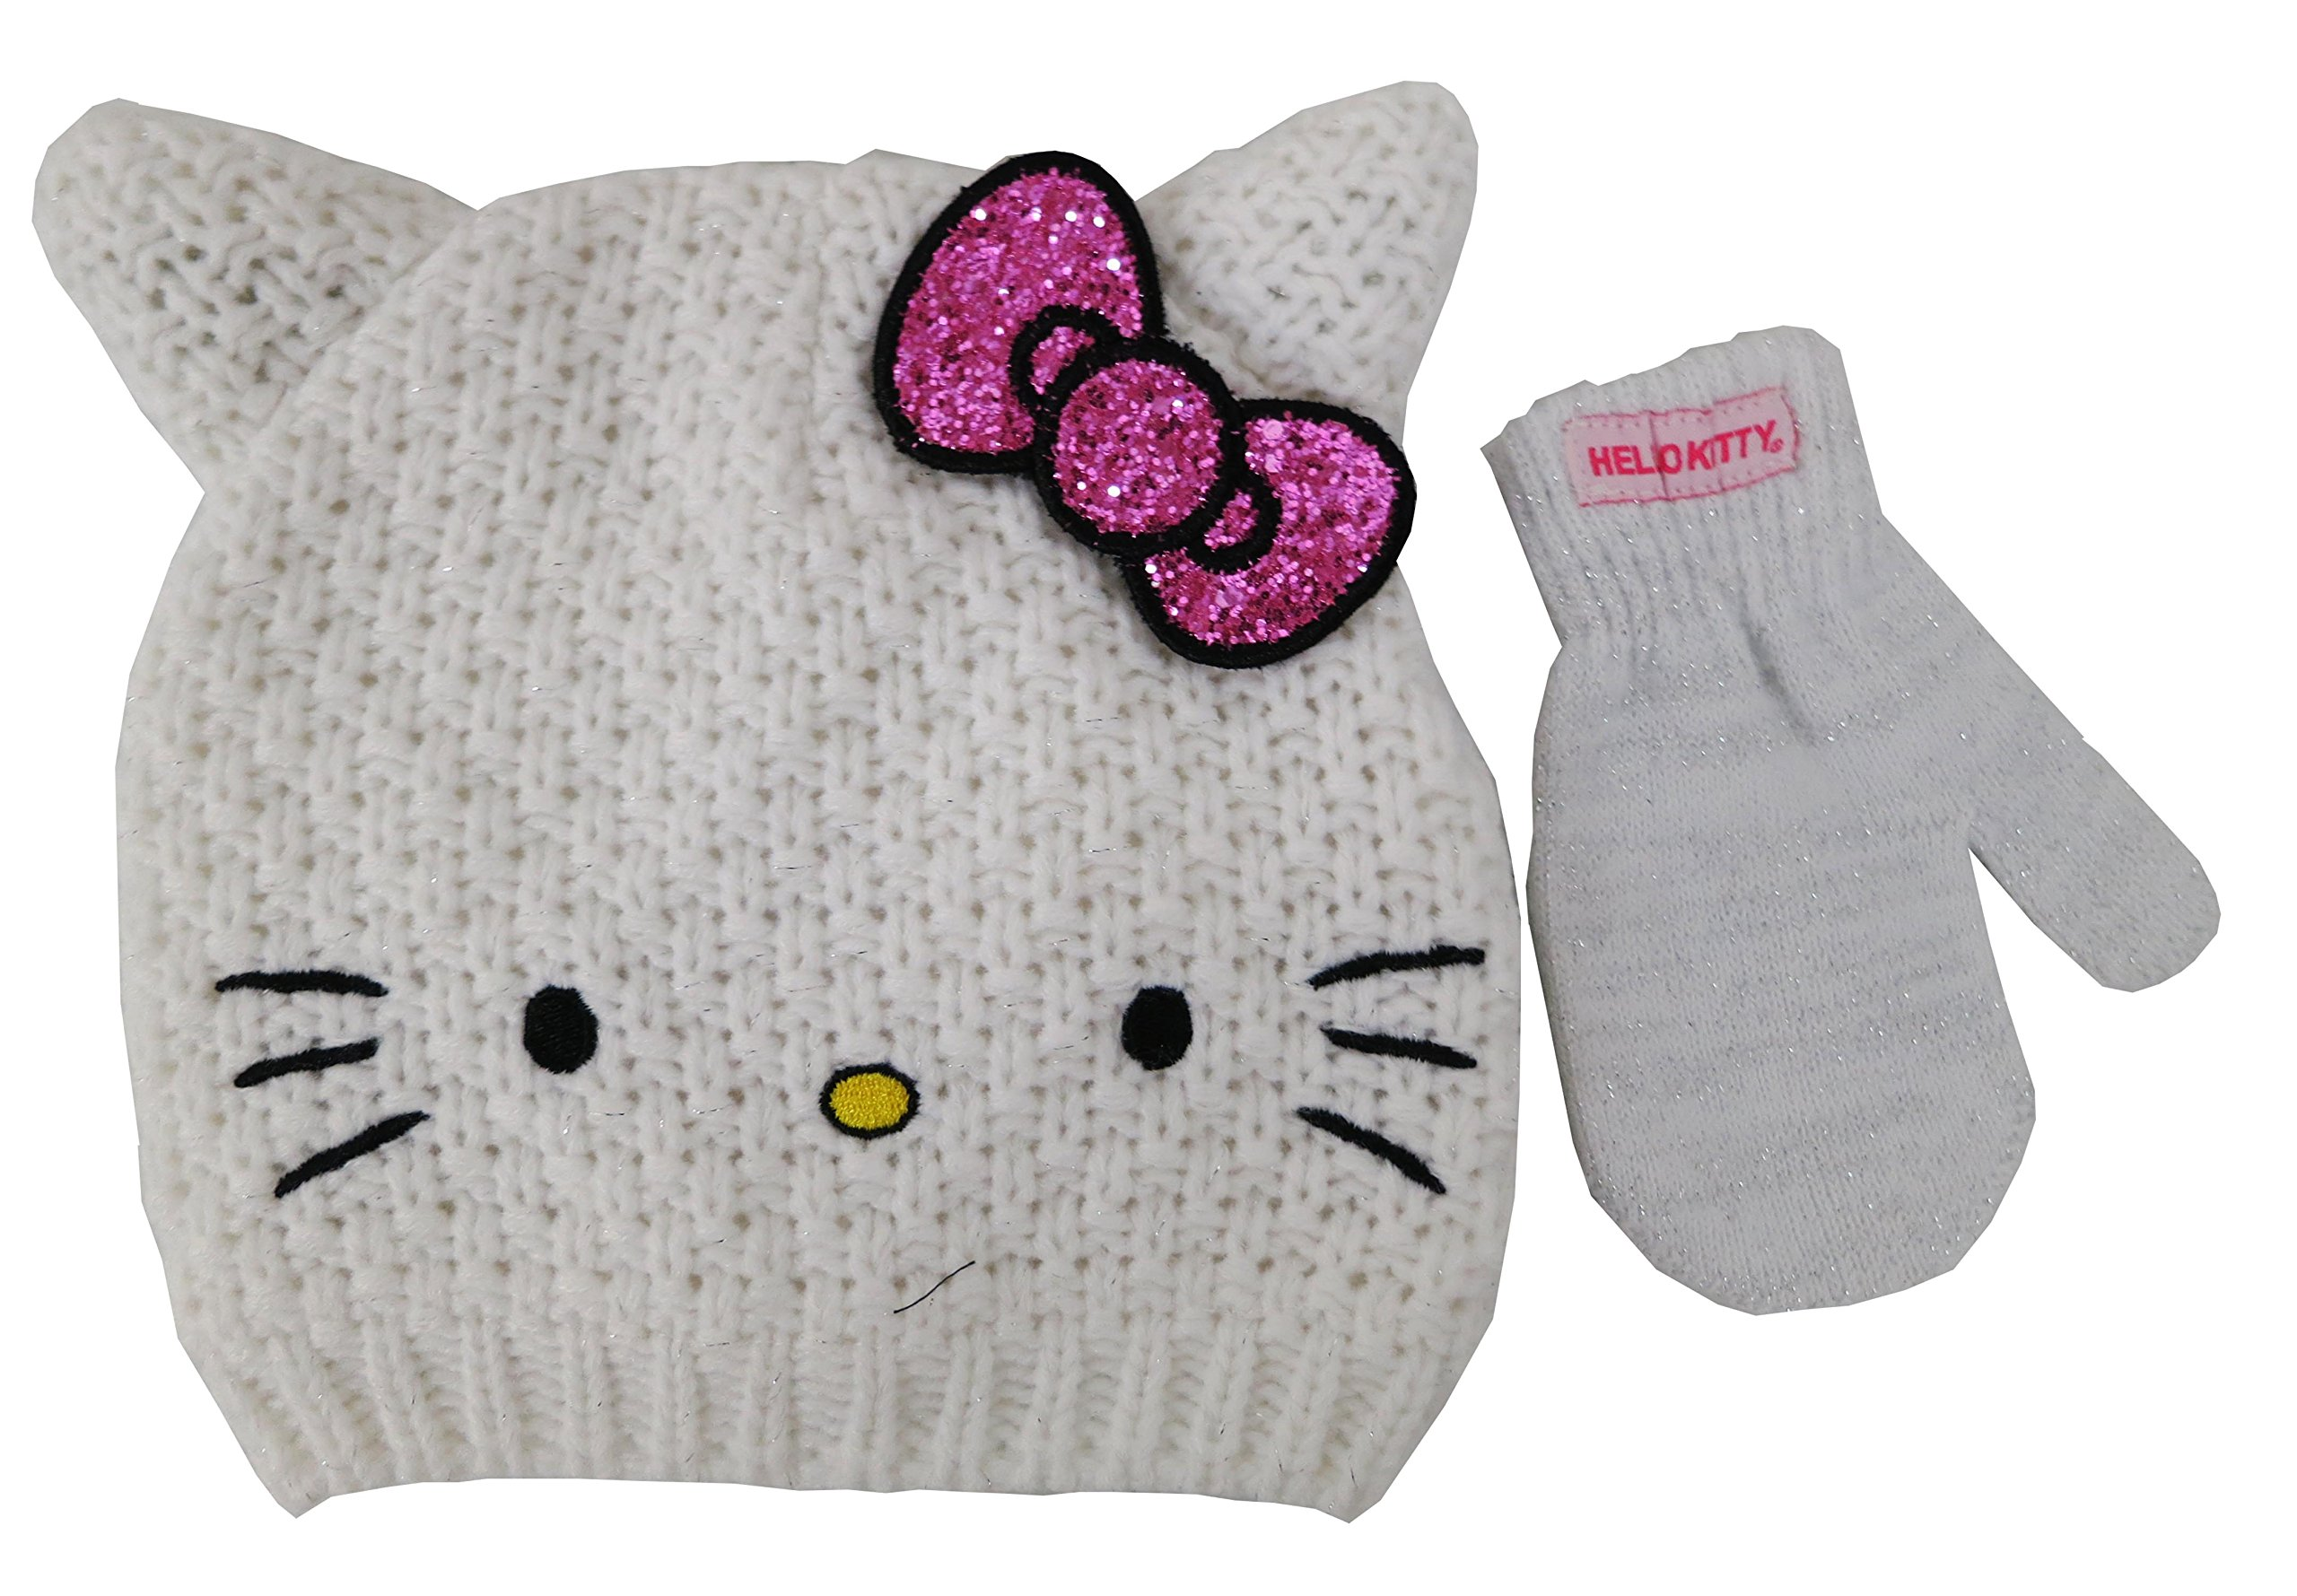 cdb1ba6a022 Get Quotations · Sanrio Hello Kitty White knitted Beanie Hat and Mitten Set  - Toddler  4013